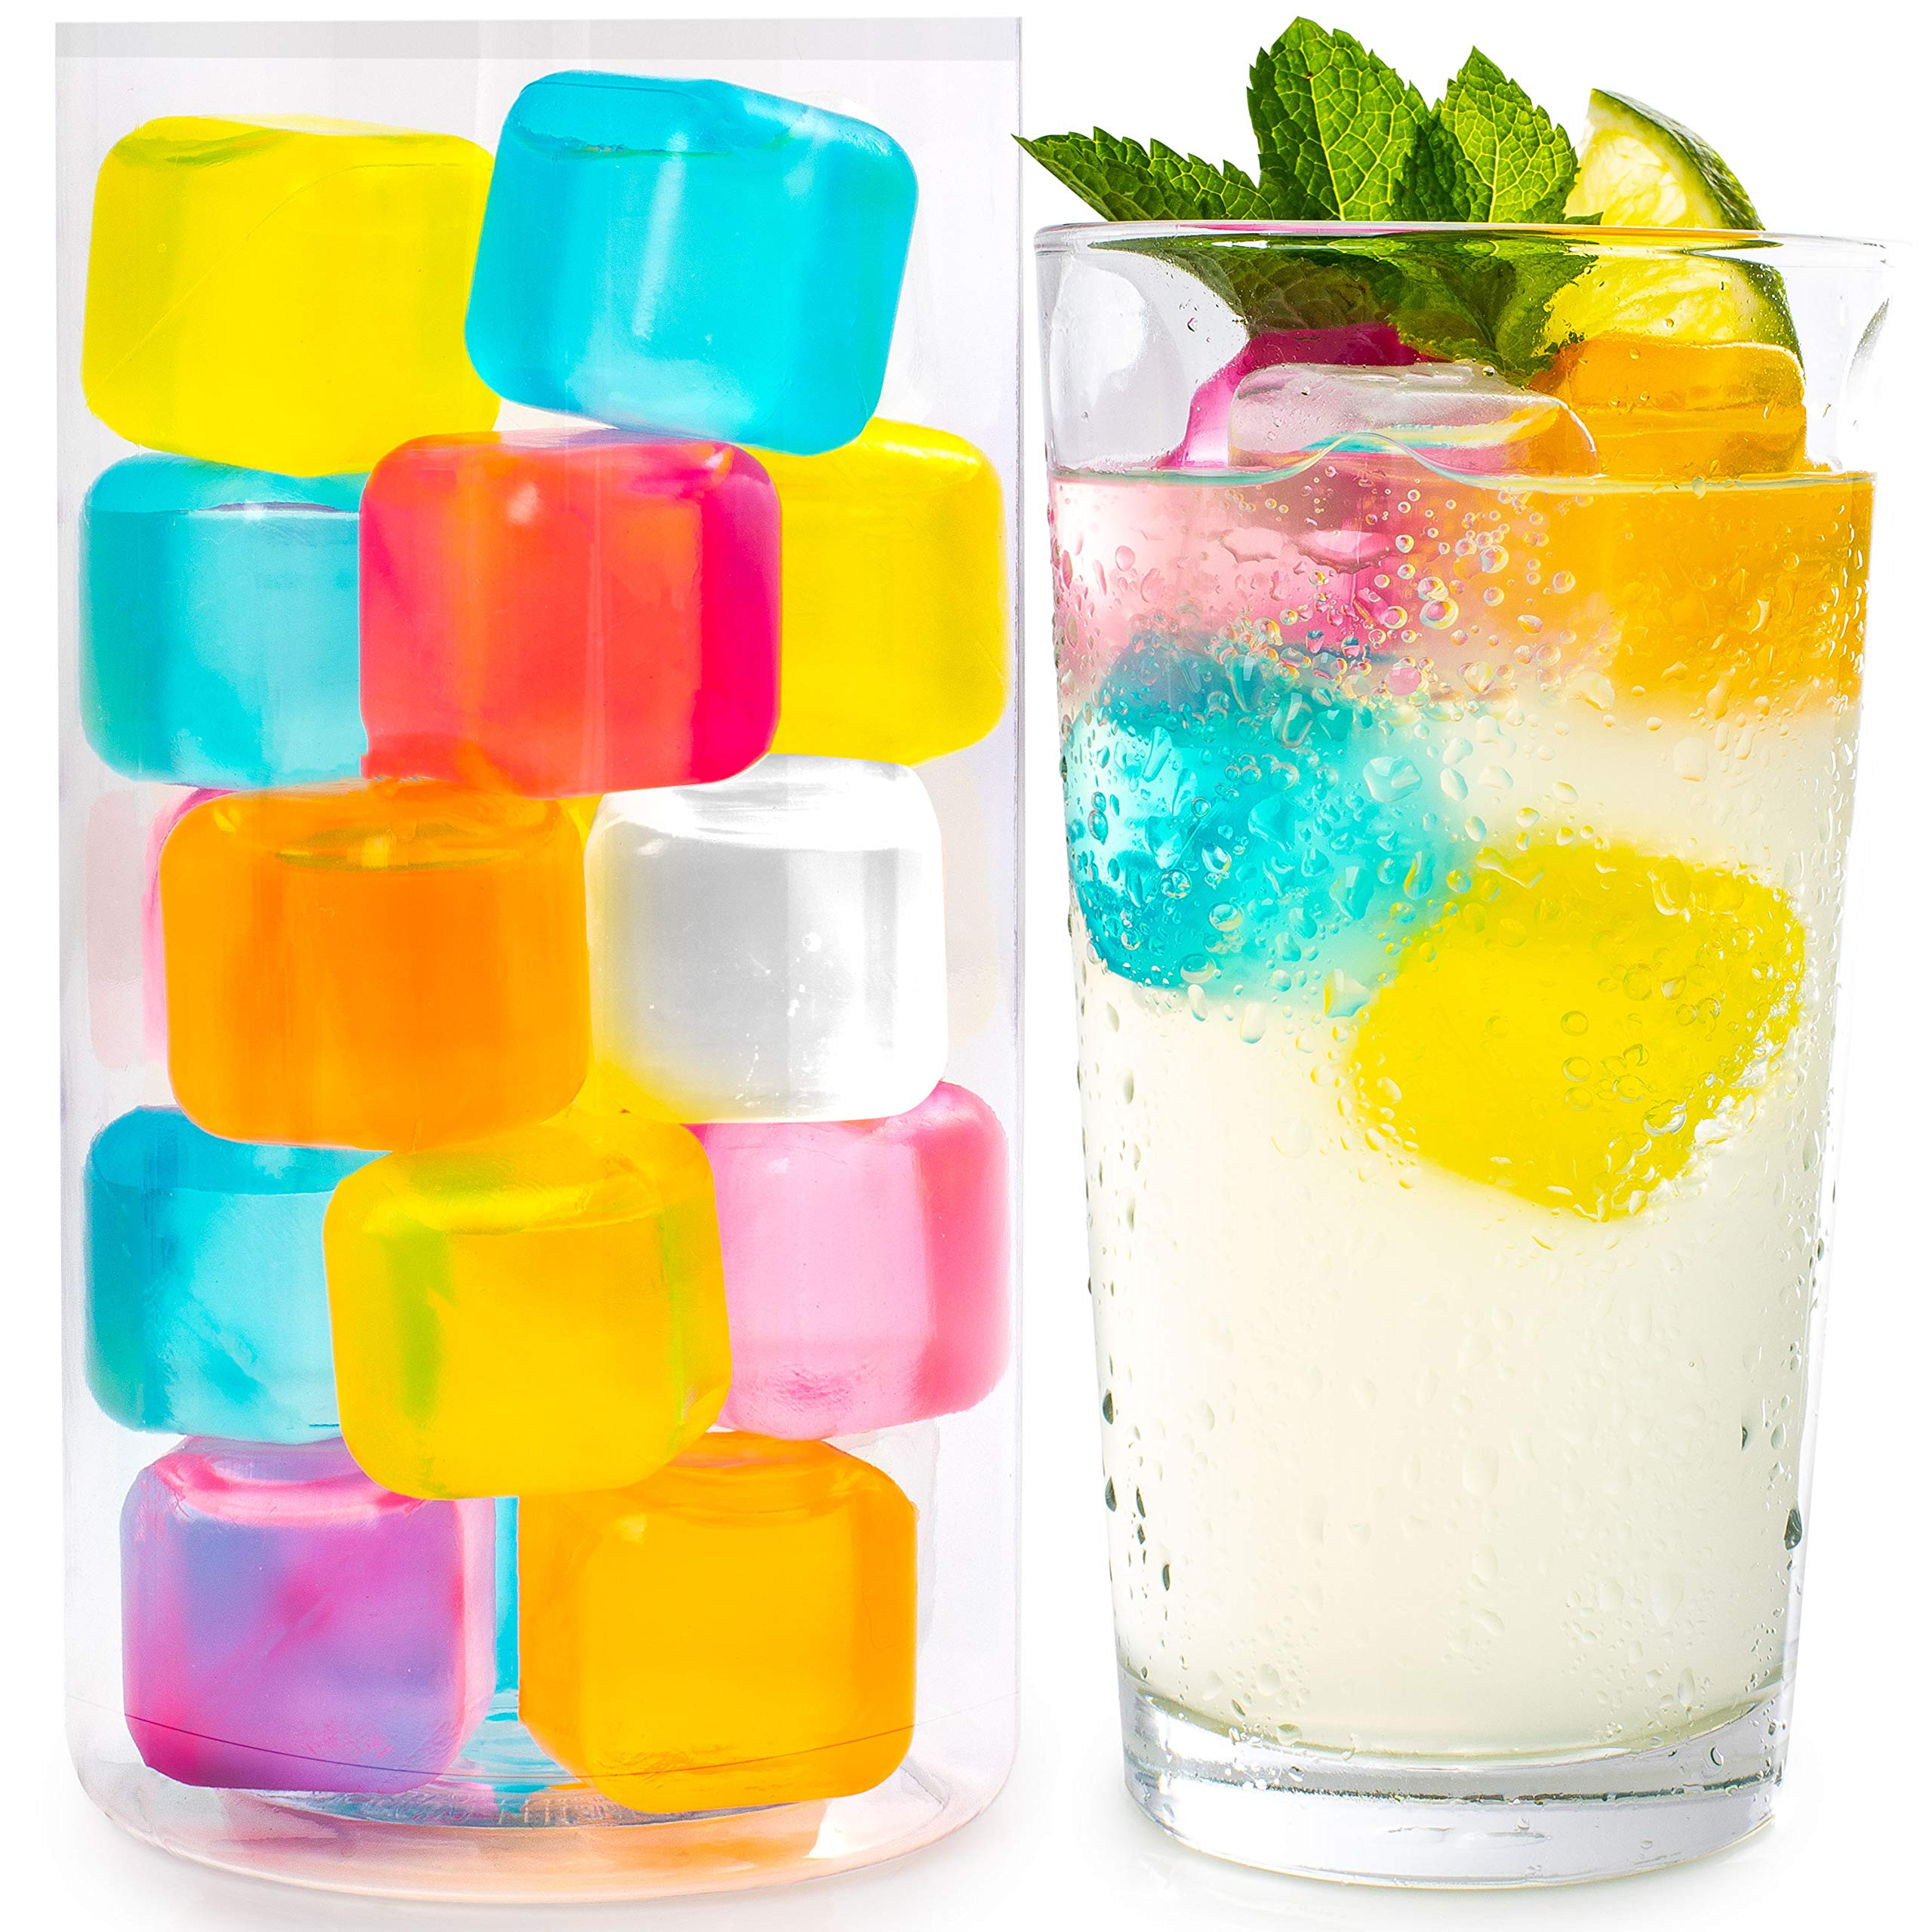 Reusable Ice Cubes For Drinks - Chills Drinks Without Diluting Them - Made From BPA Free Plastic - Refreezable, Washable, Quick And Easy To Use - For All Beverages - Pack Of 30 With Storage Tube